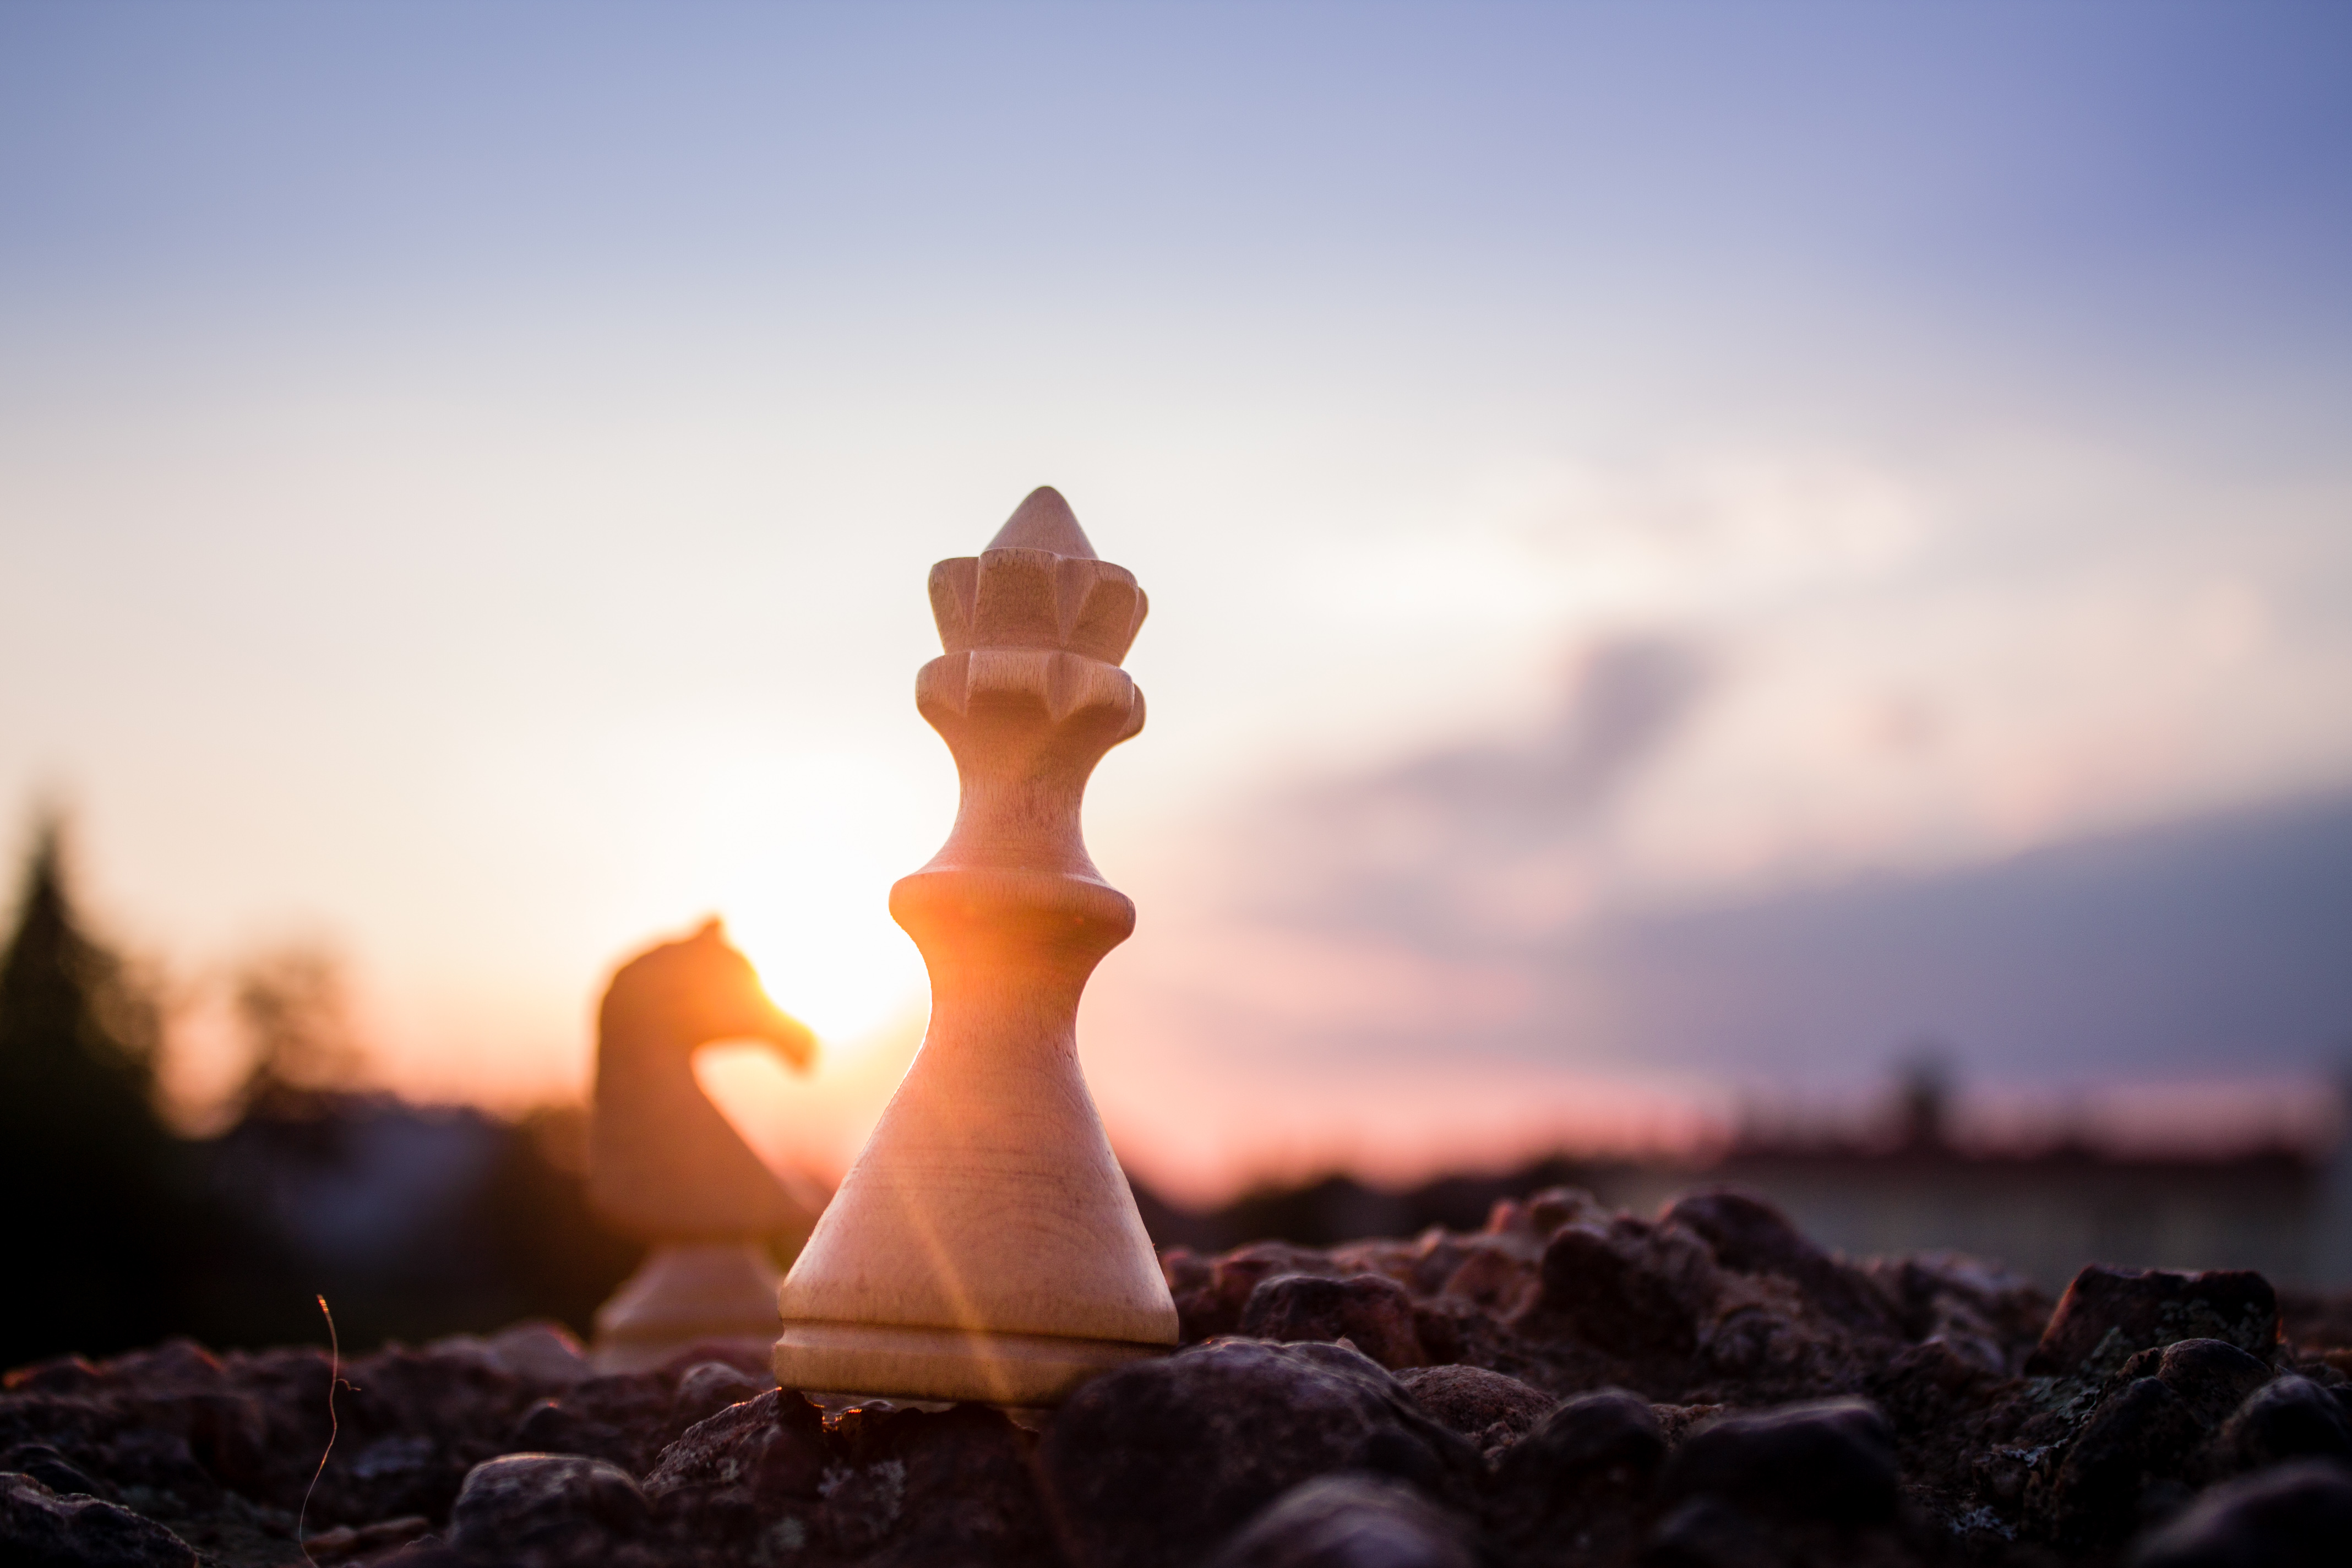 AI Learning More About Chess Mistakes